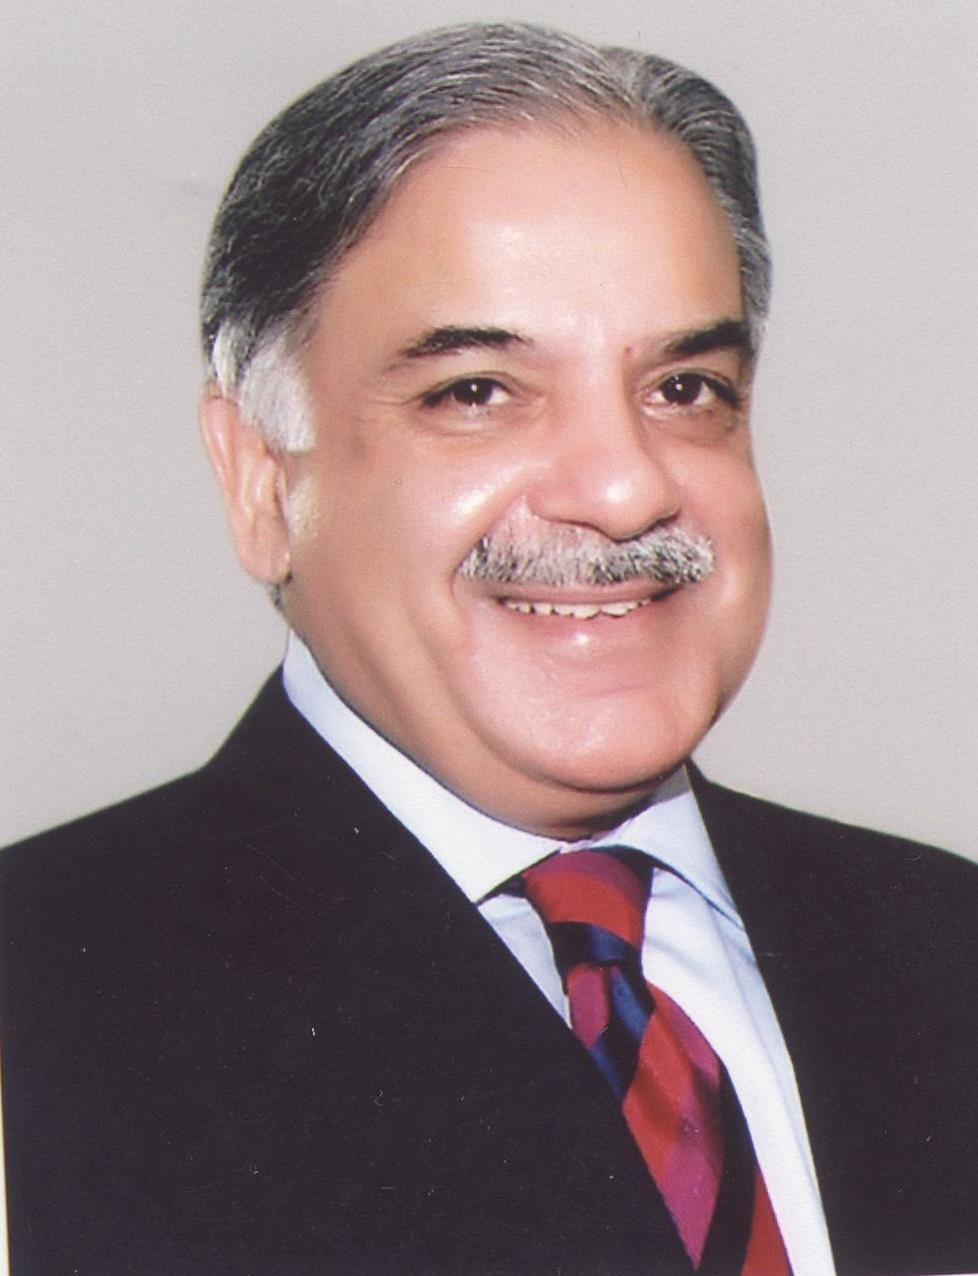 shahbazsharif - Politics & Current Affairs March 2014